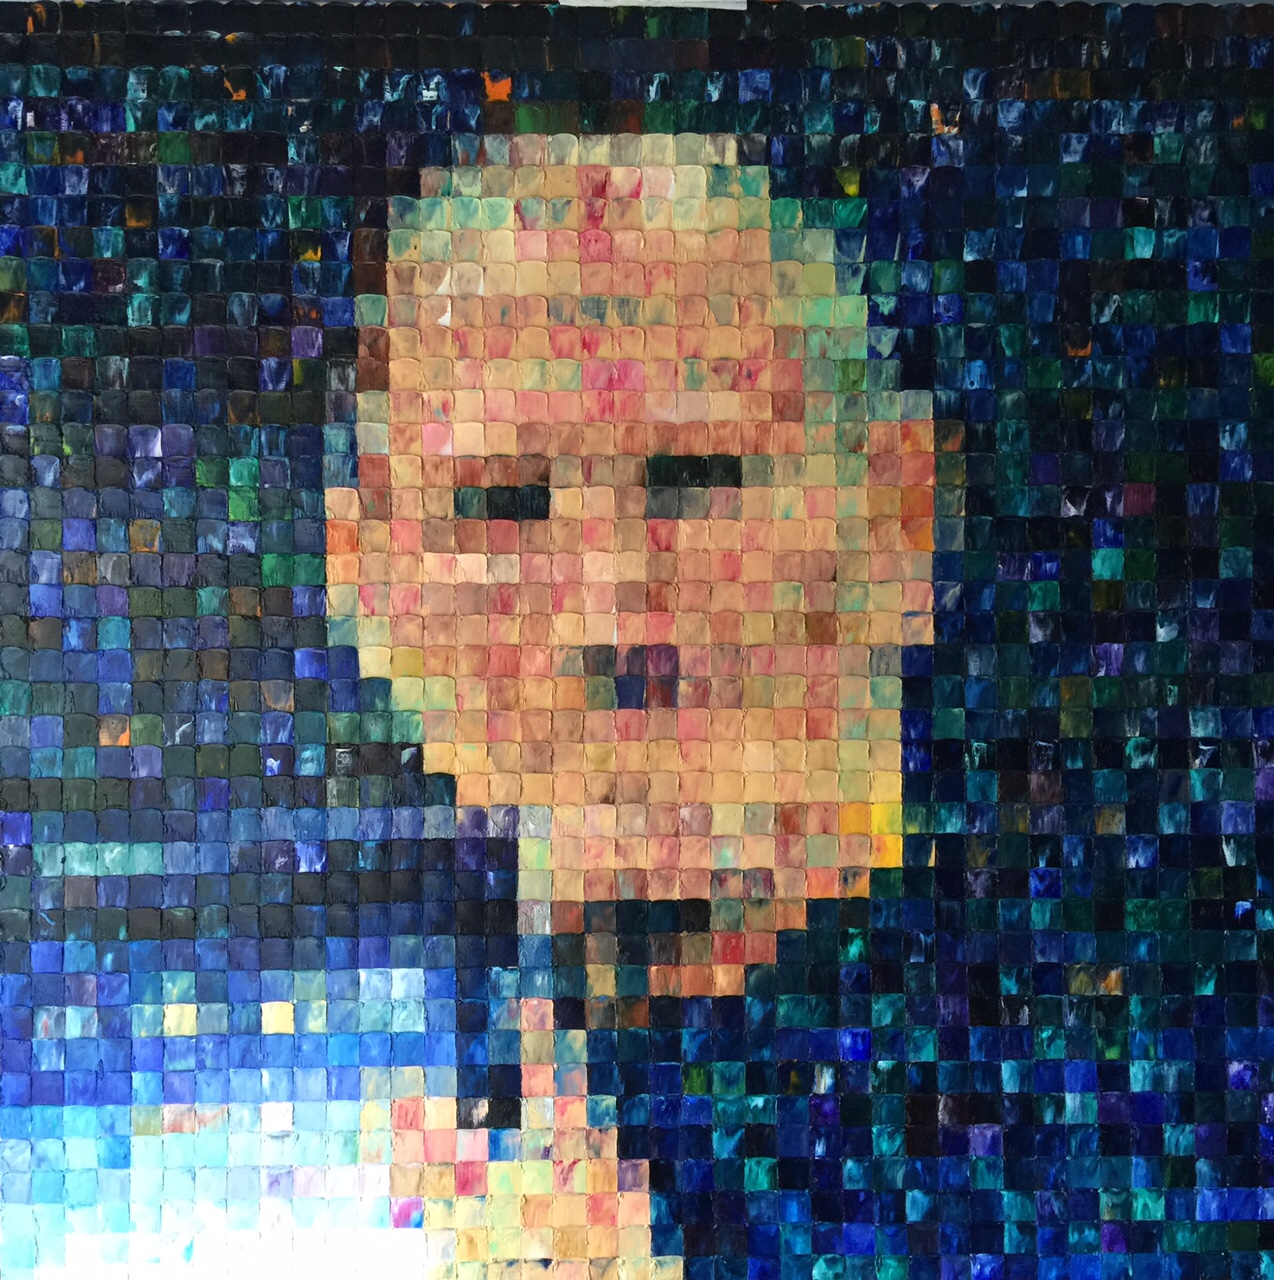 Steve artwork by Yakov Boyko - art listed for sale on Artplode